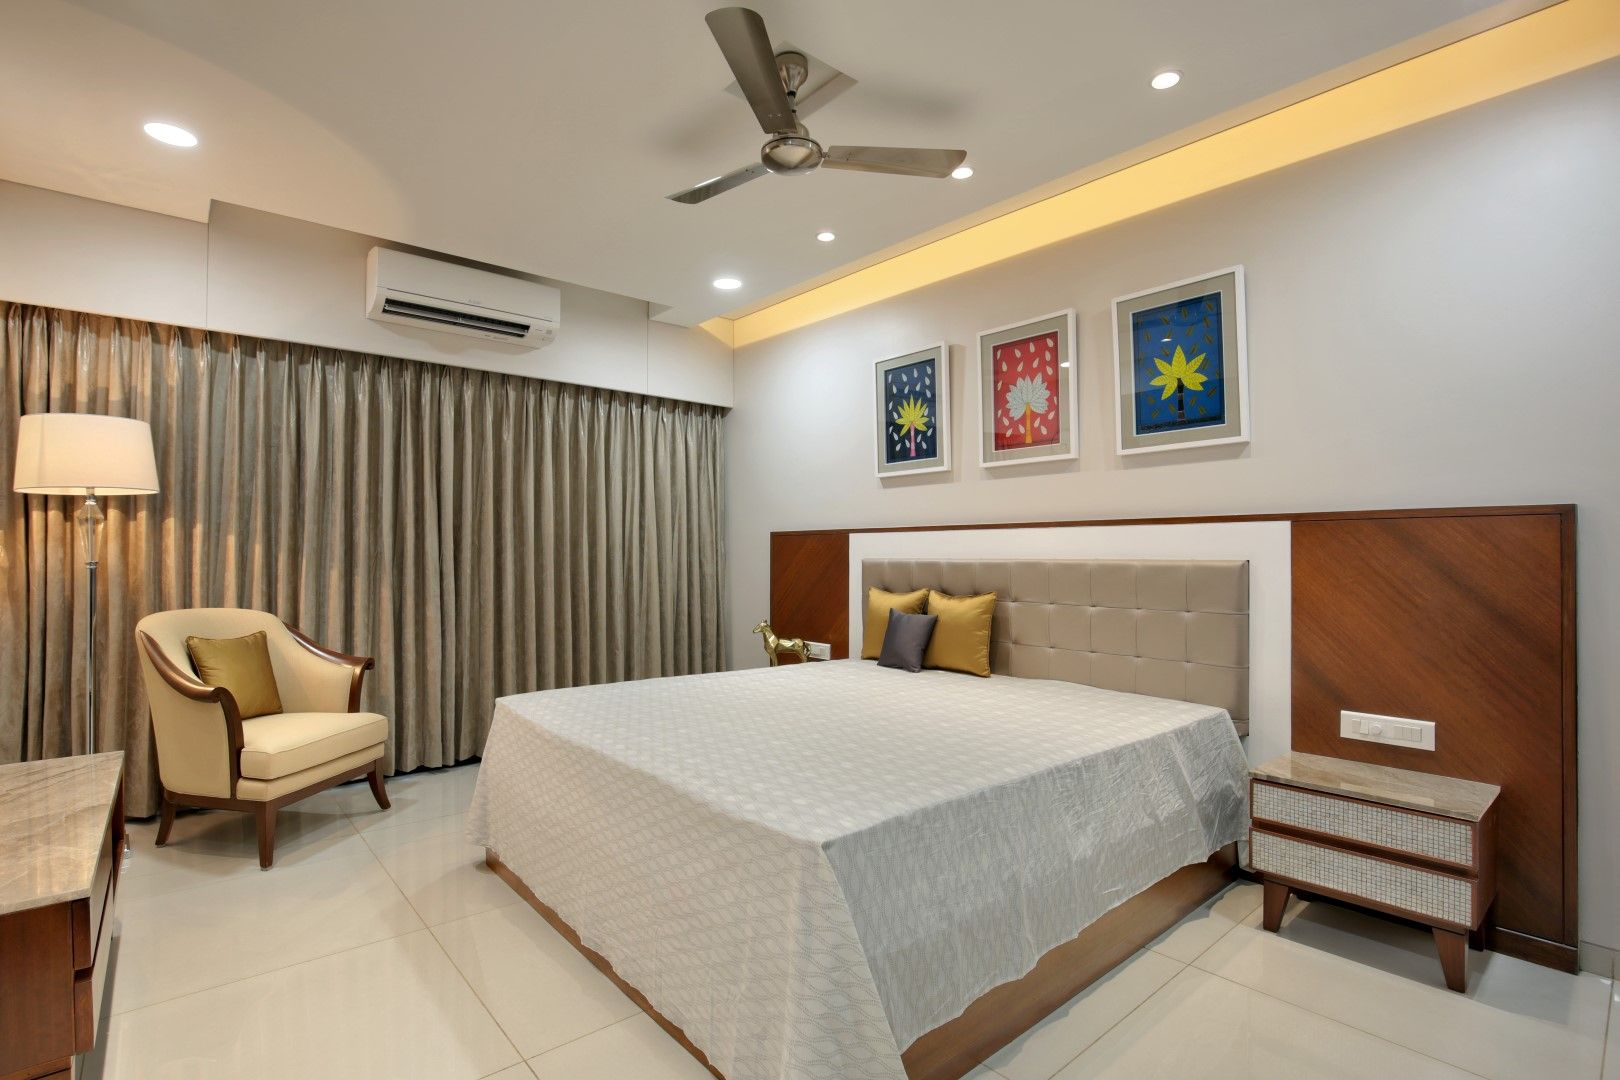 3 Bhk Flat Interiors The Oak Woods With Images Modern Bedroom Interior Bedroom False Ceiling Design Flat Interior